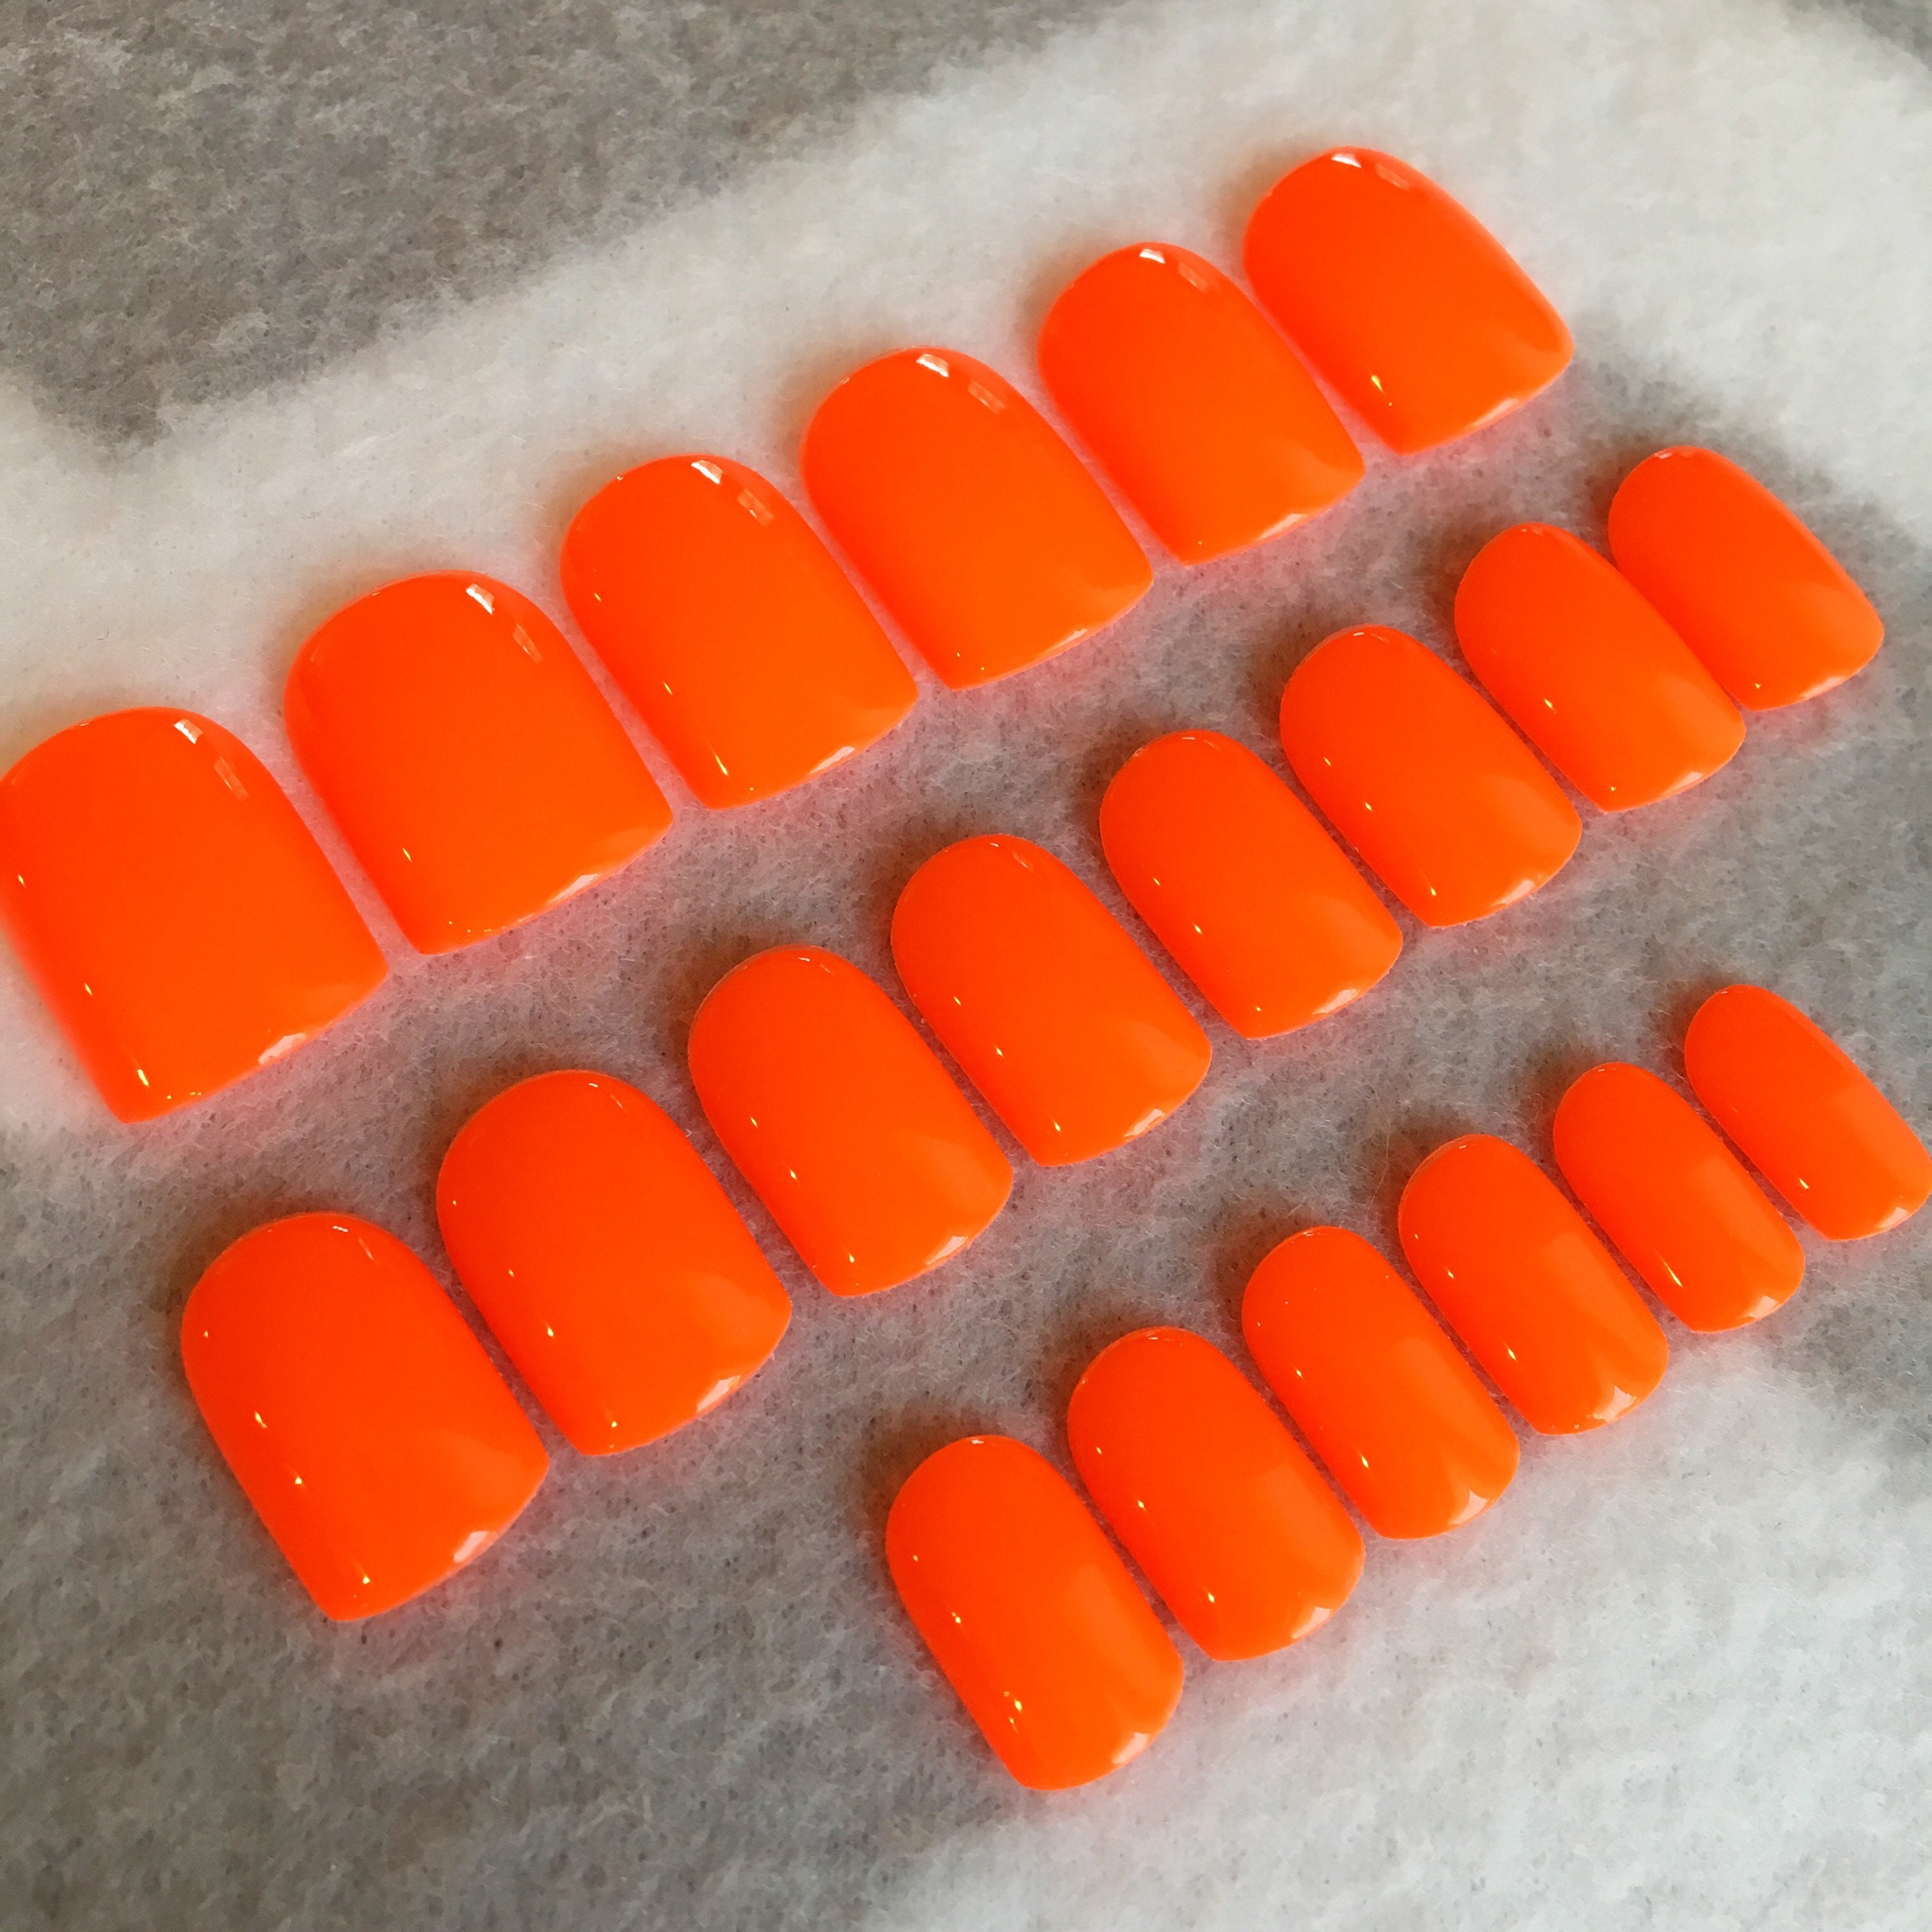 Neon Orange-Red Faux Nails * Fake Nails * Glue On Nails * Squoval ...